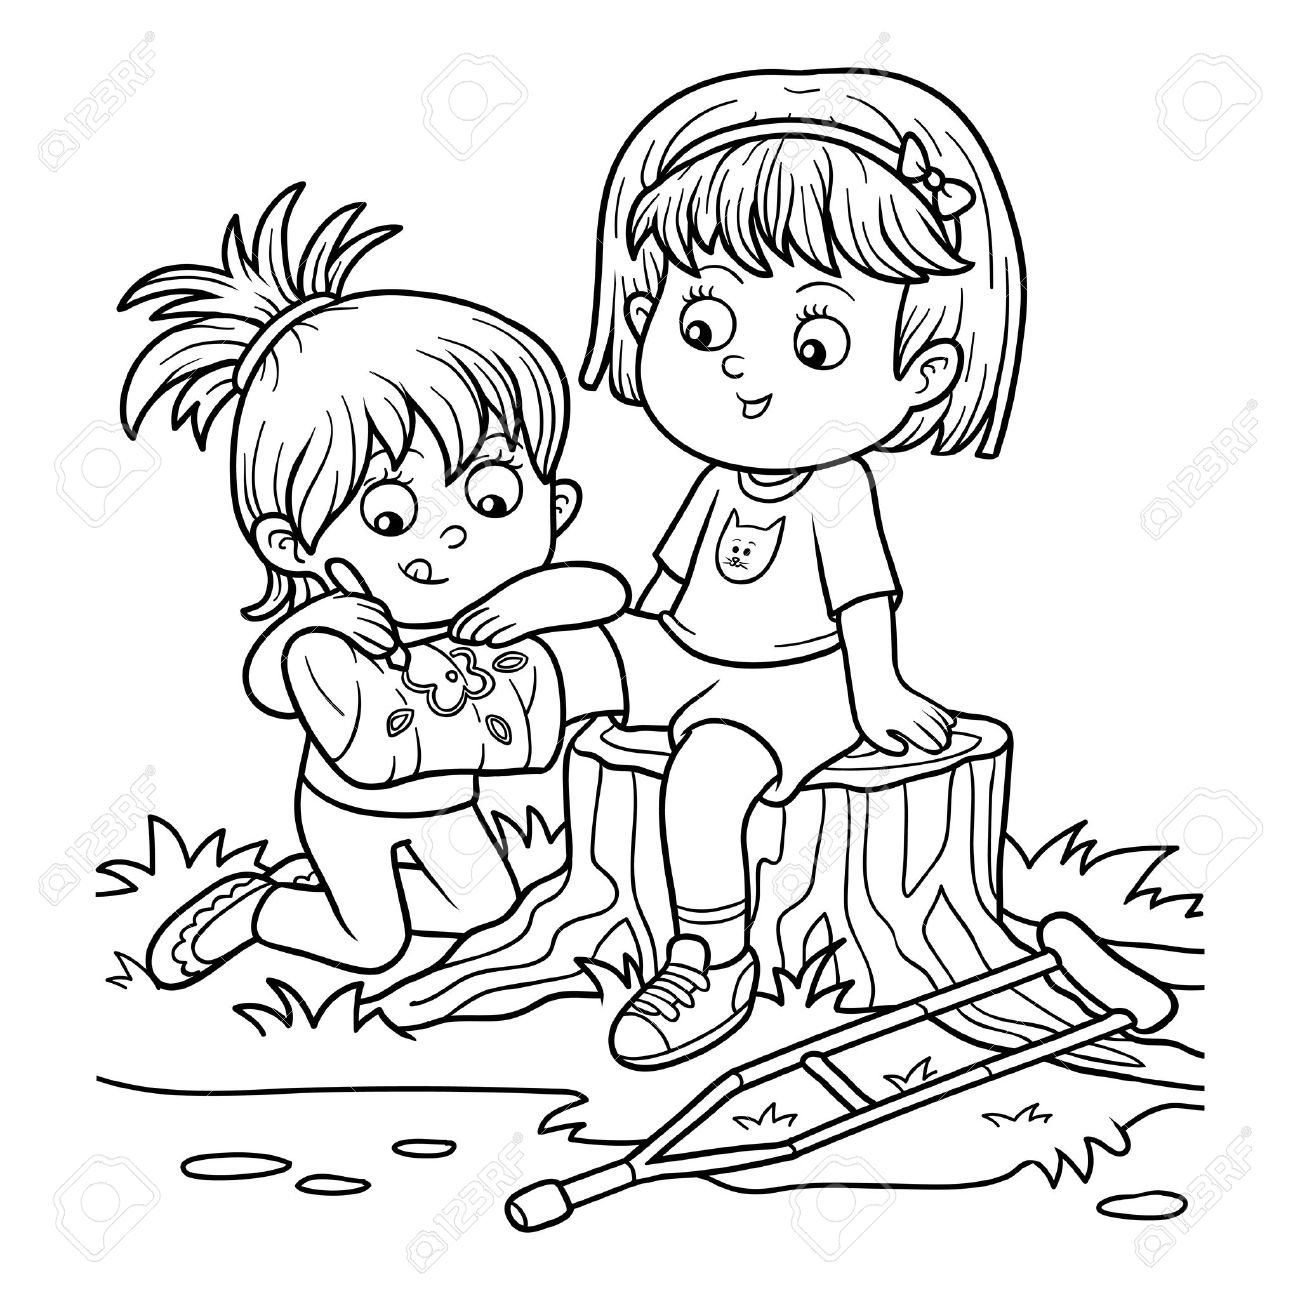 1300x1300 Coloring Book For Children (Two Girls On The Glade, Girl Draws